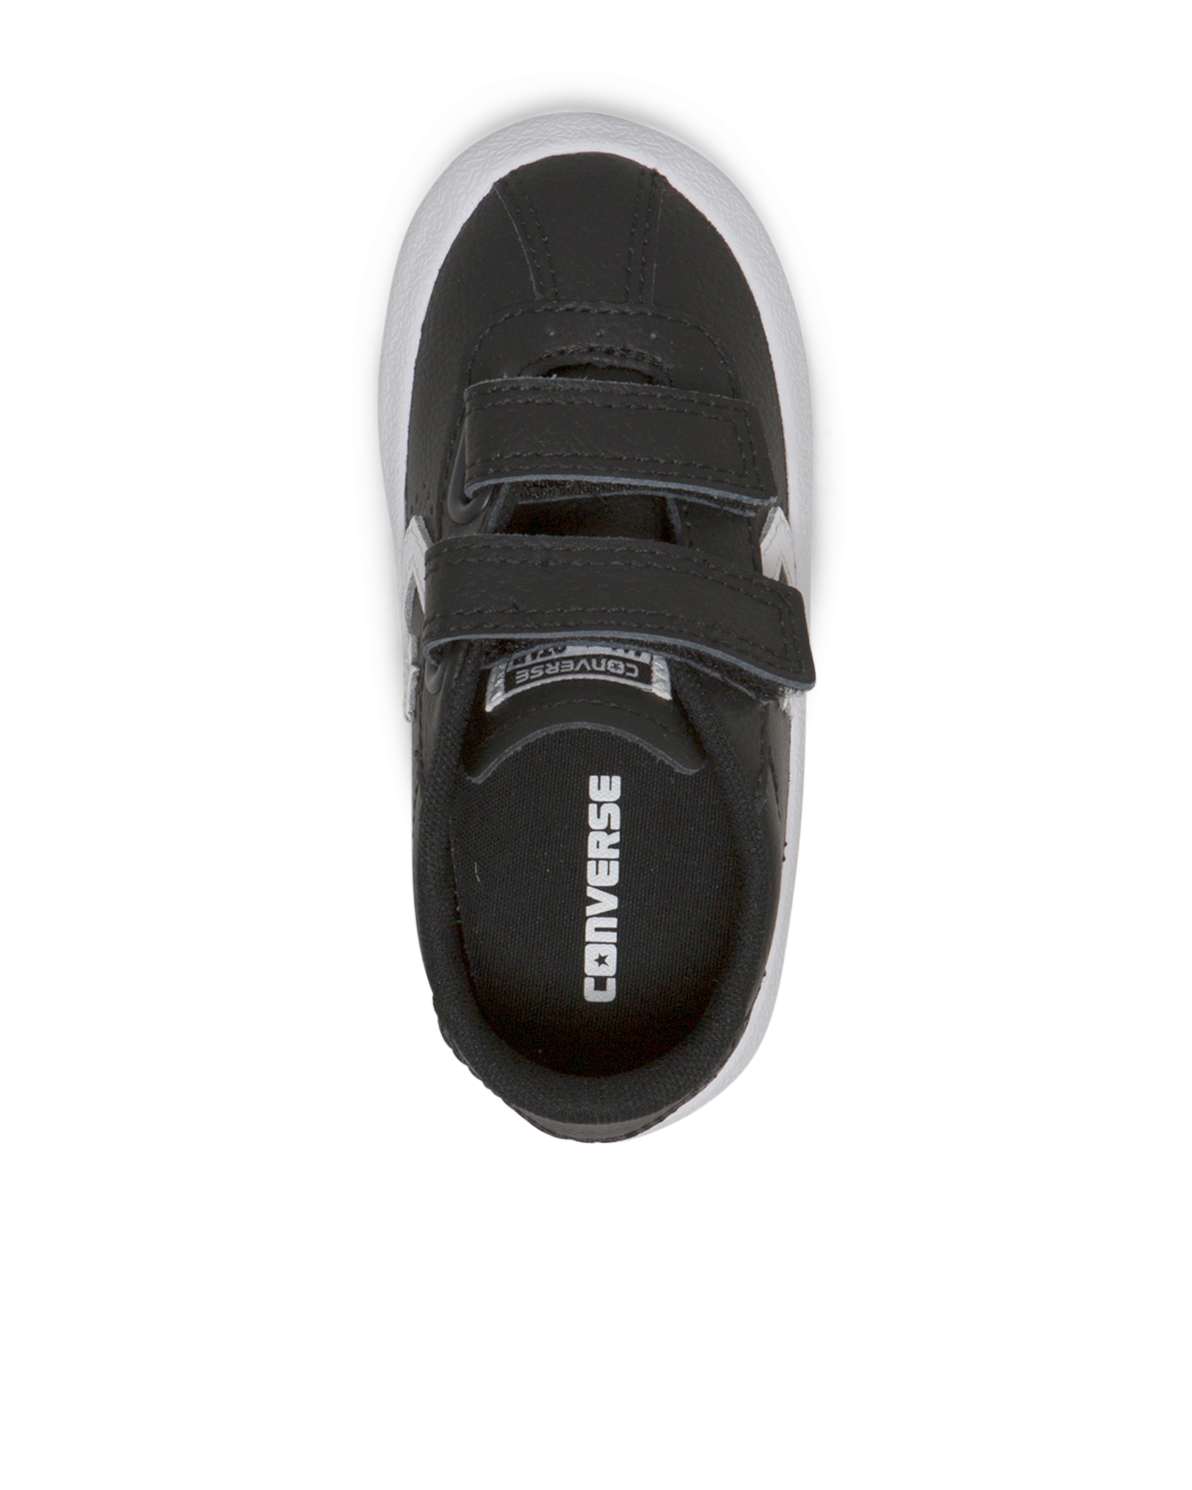 231d4f4b1d4da3 Converse Breakpoint Toddler 2V Leather Low Top is classic converse styling  with two velcro strap closures